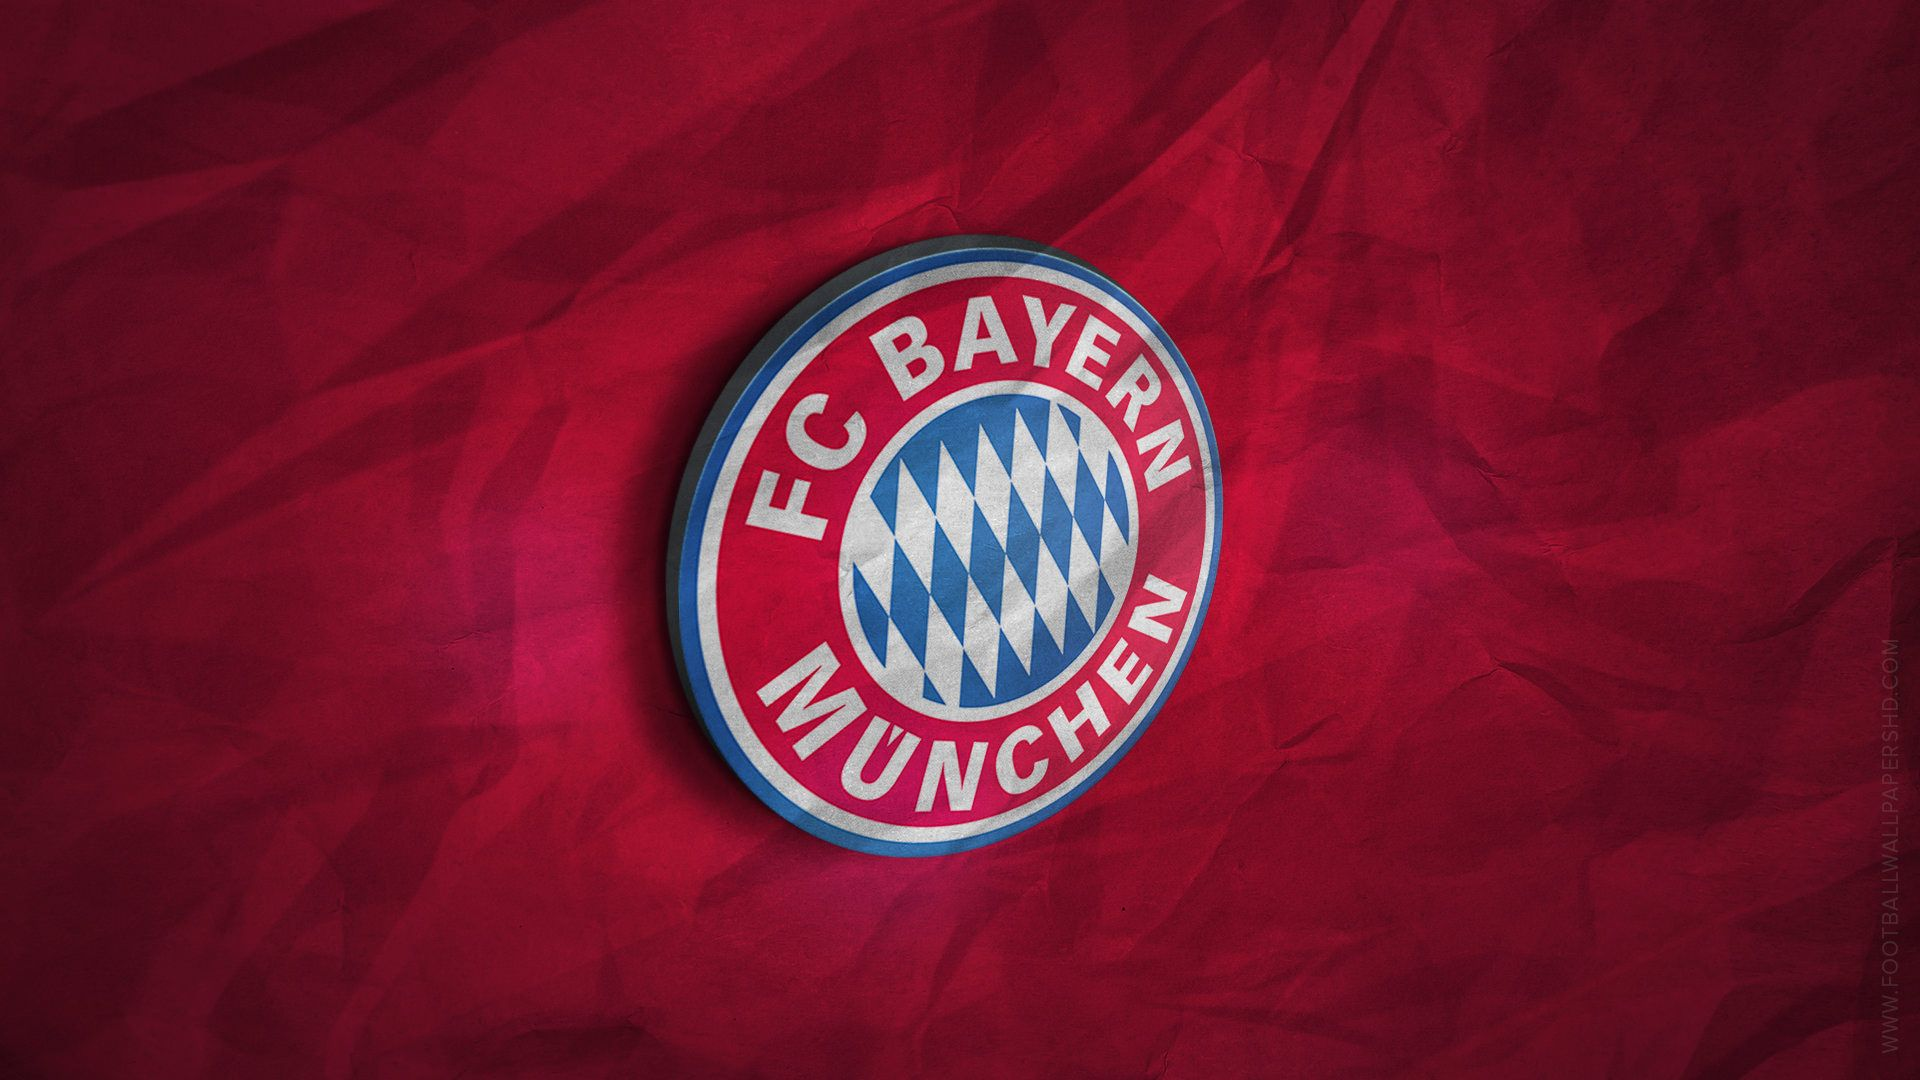 Bayern munich 3d logo wallpaper football wallpapers hd bayern munich 3d logo wallpaper voltagebd Images